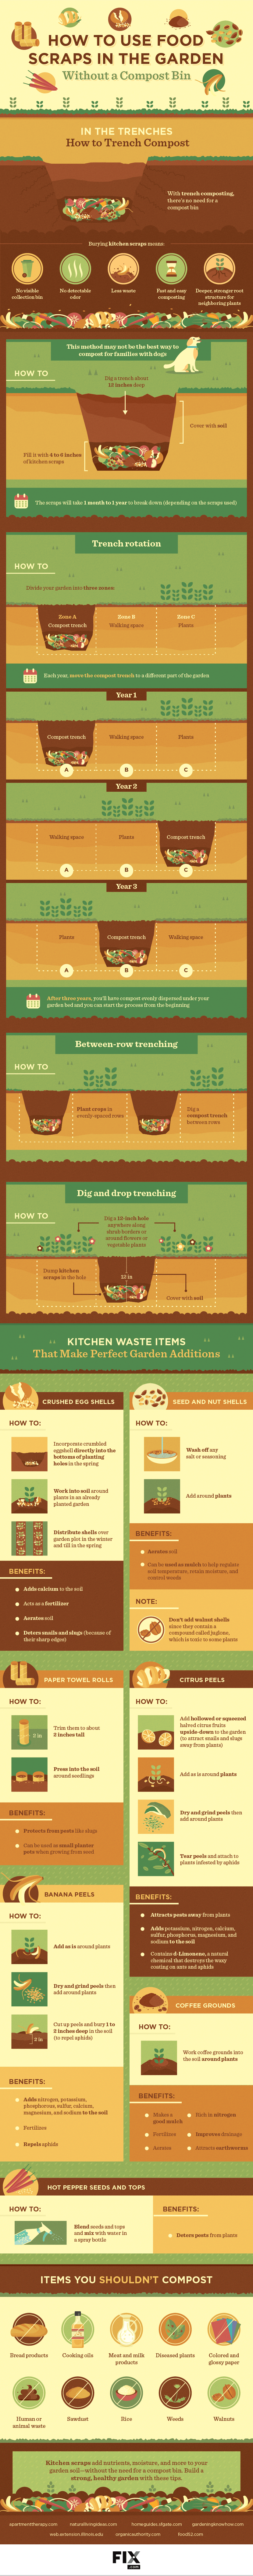 Trench composting infographic